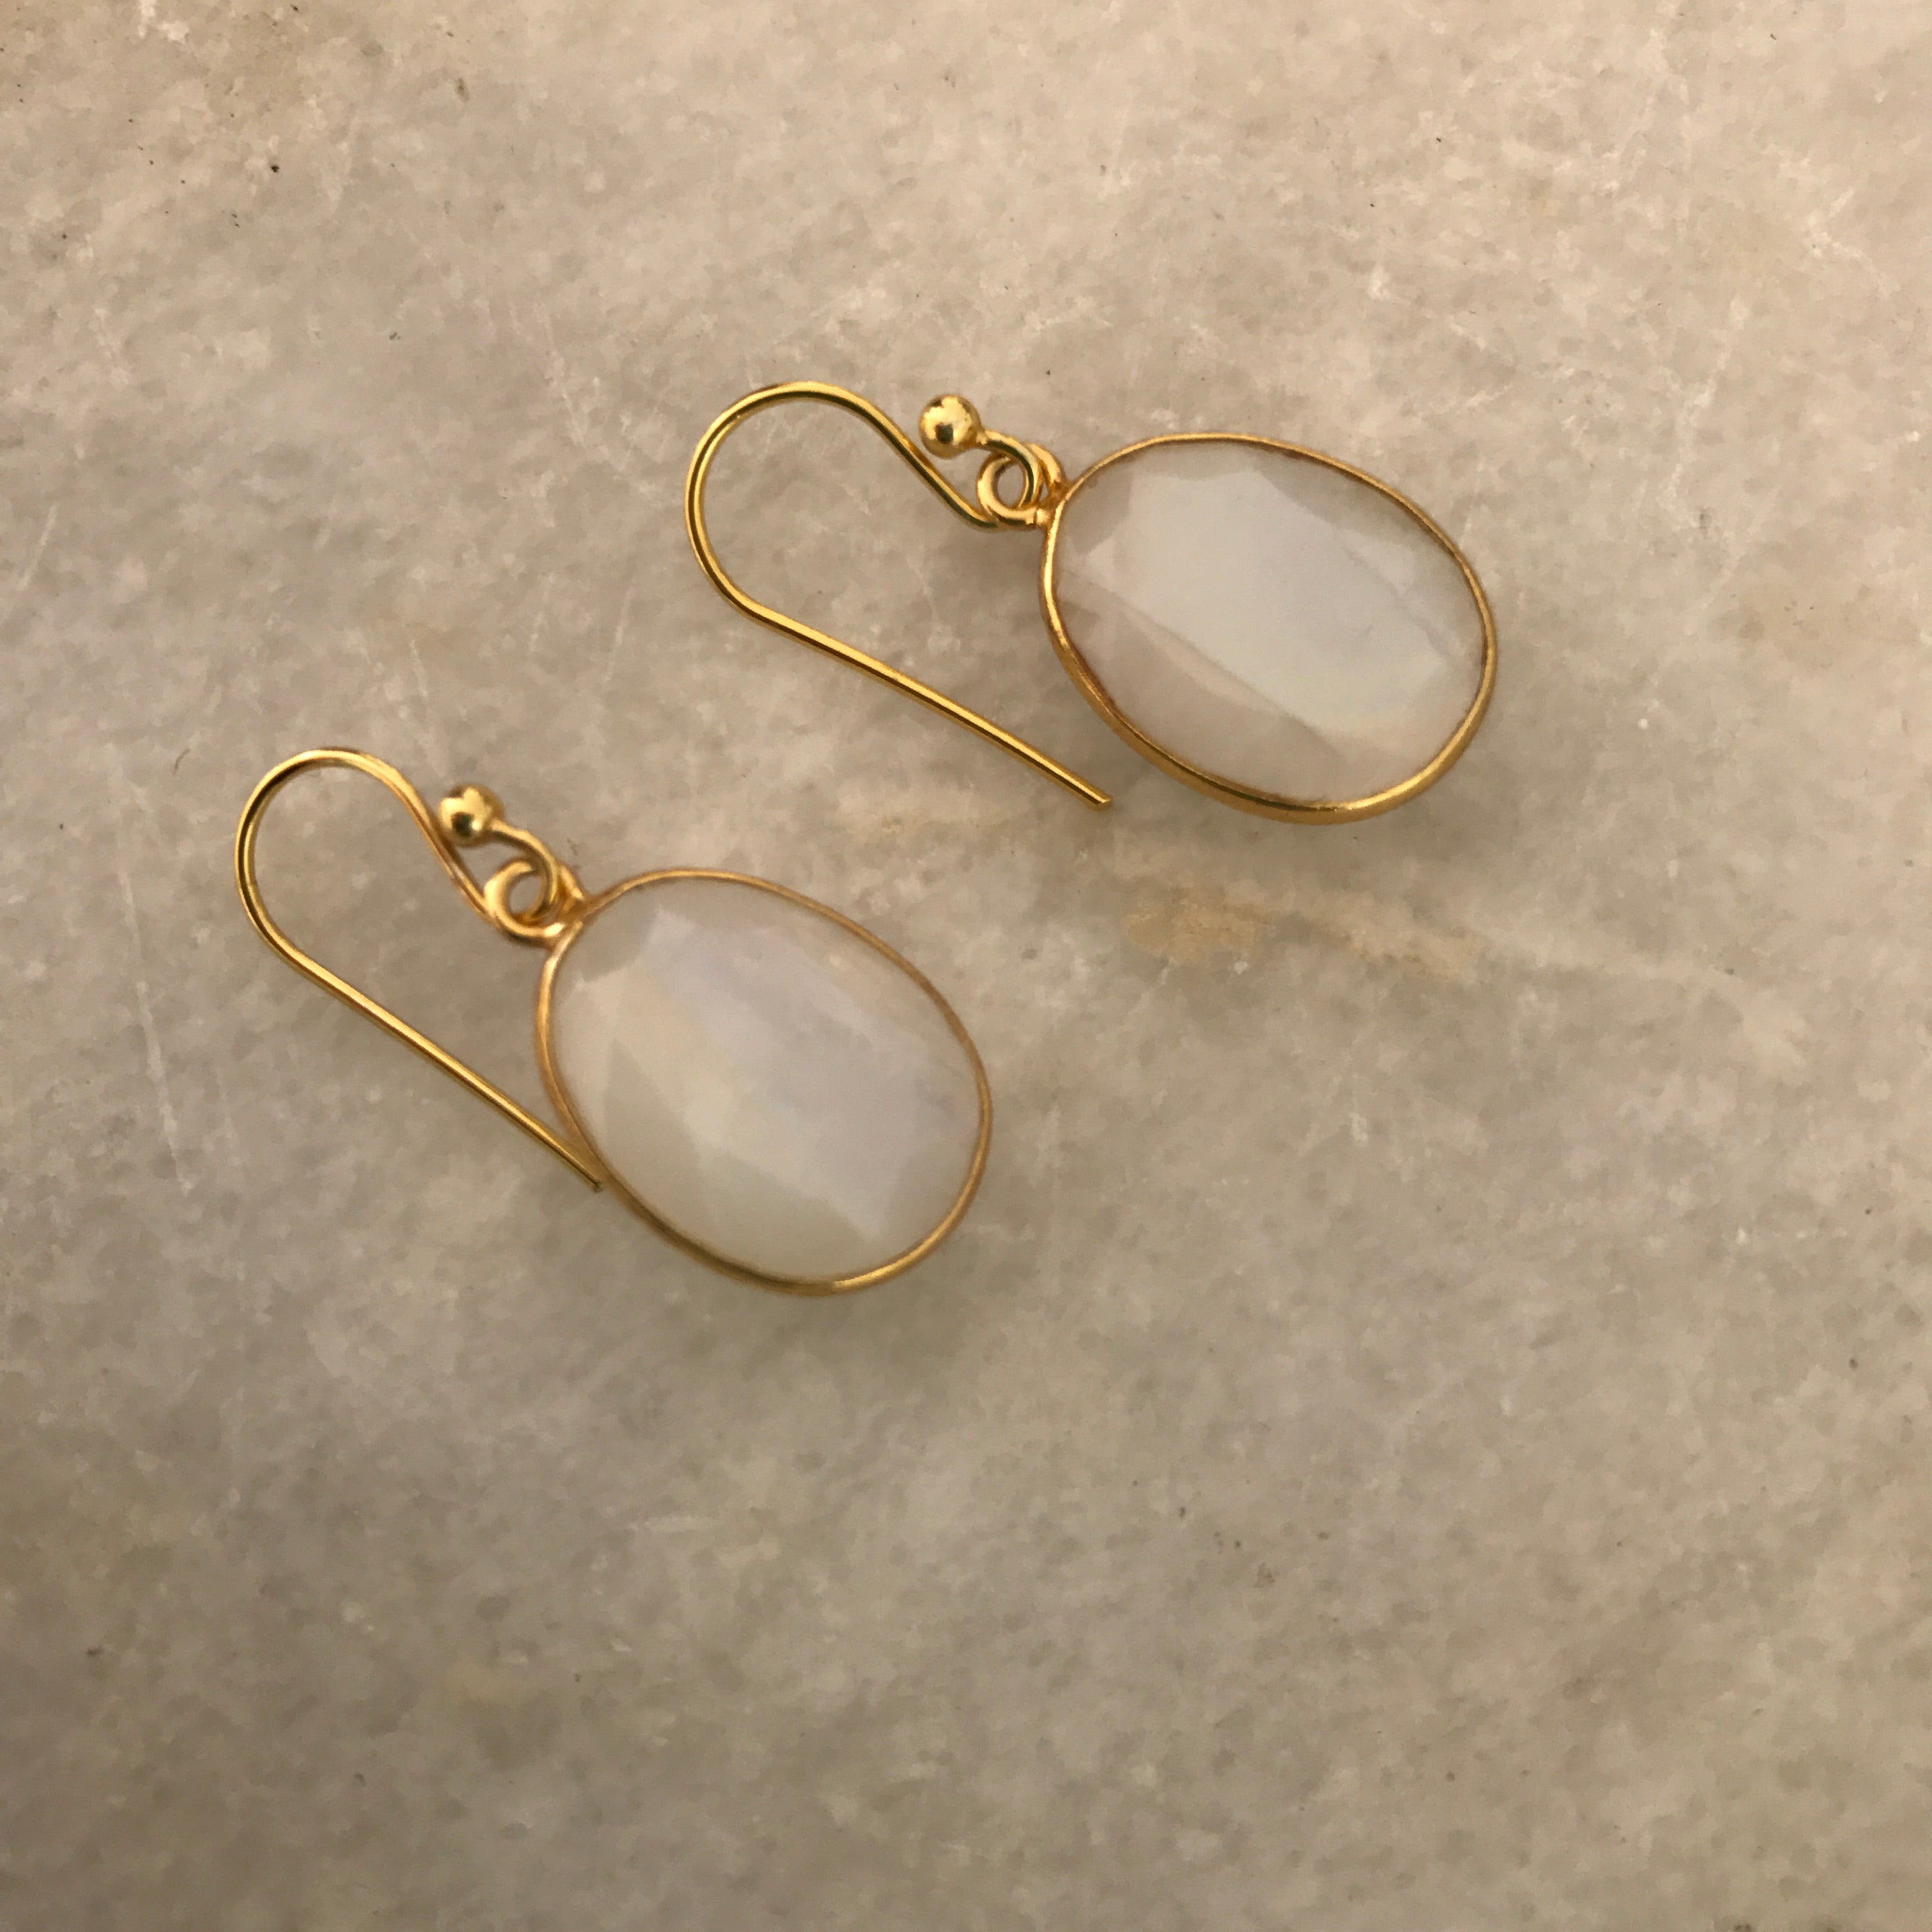 Moonstone Handmade Earrings